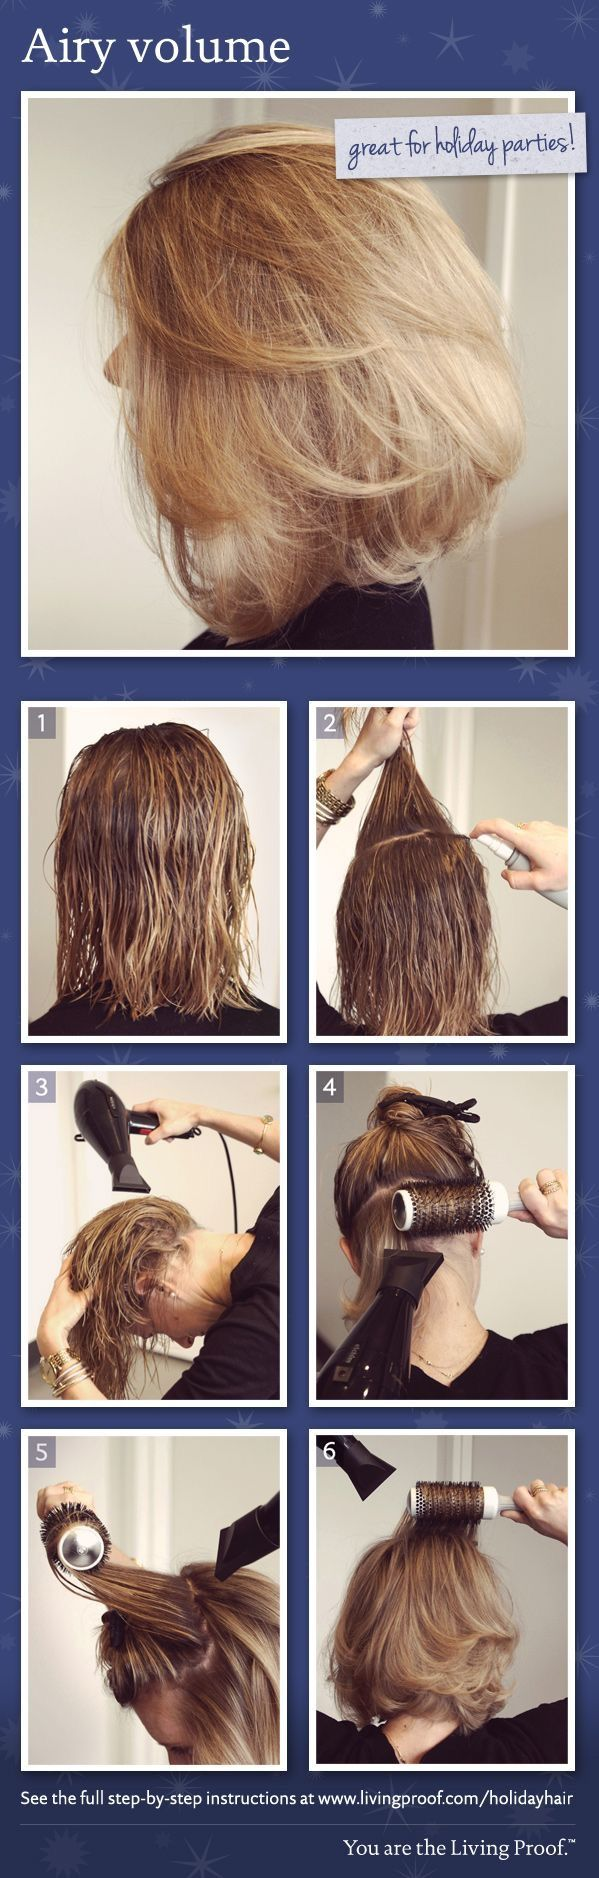 Pin by mayra martínez on hairstyle pinterest hair style hair